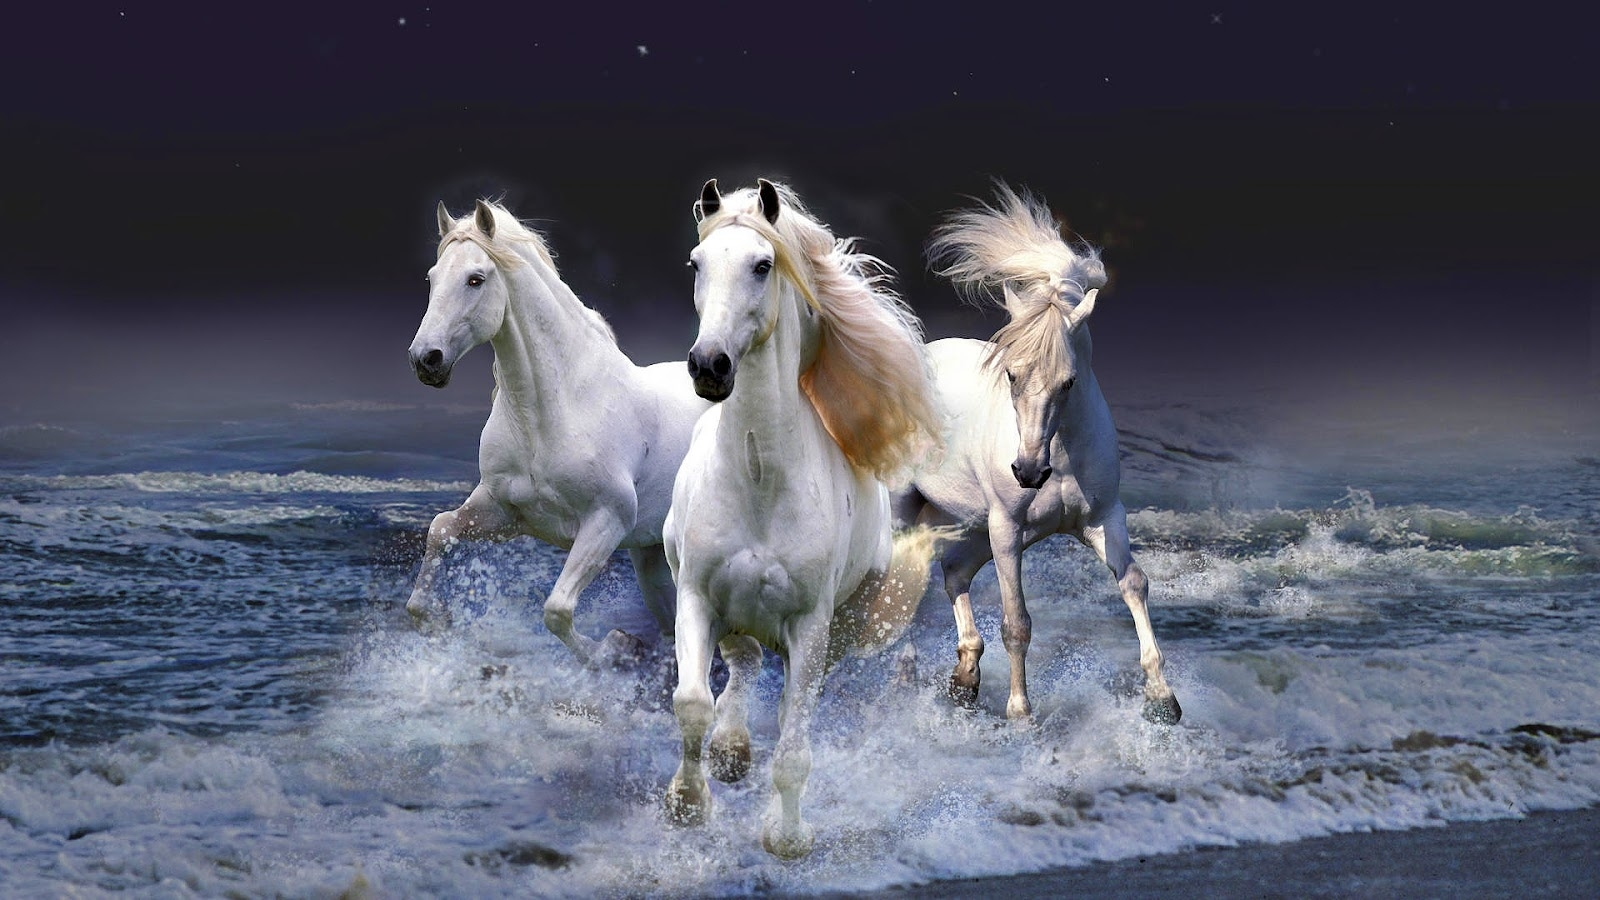 horses | hd animal wallpaper of white horses running through water